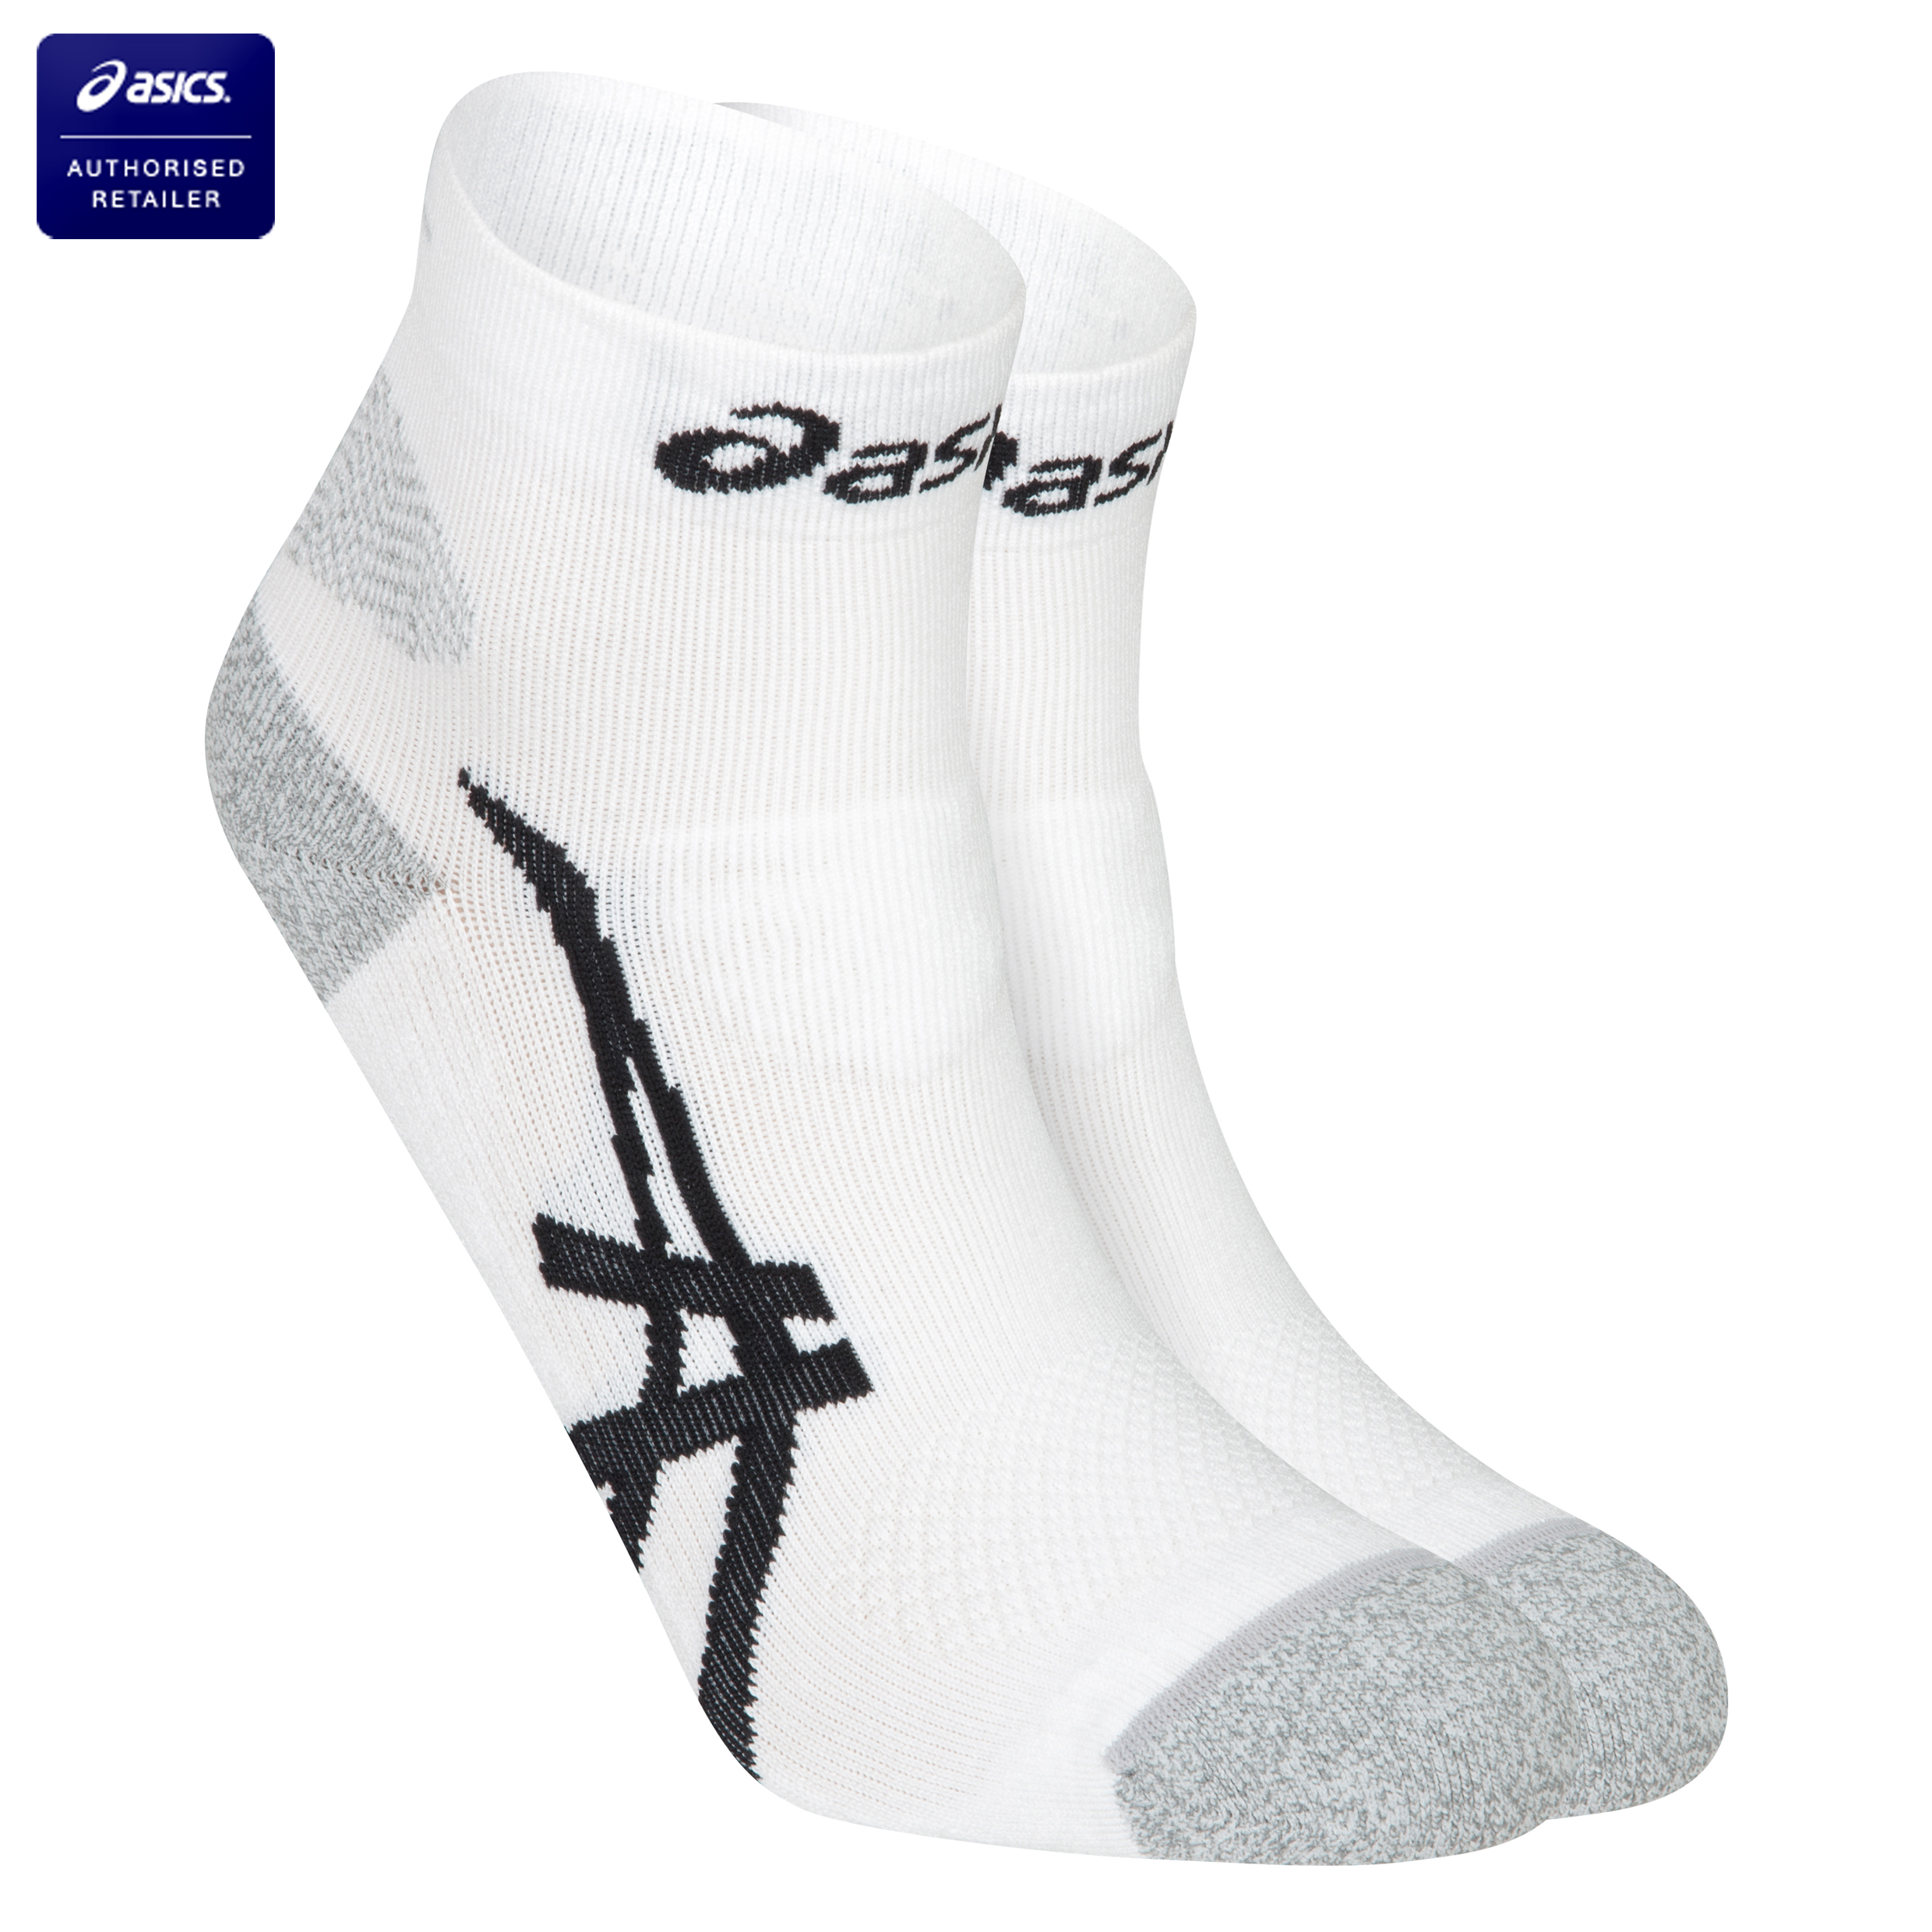 Asics Kayano Socks - White/Black